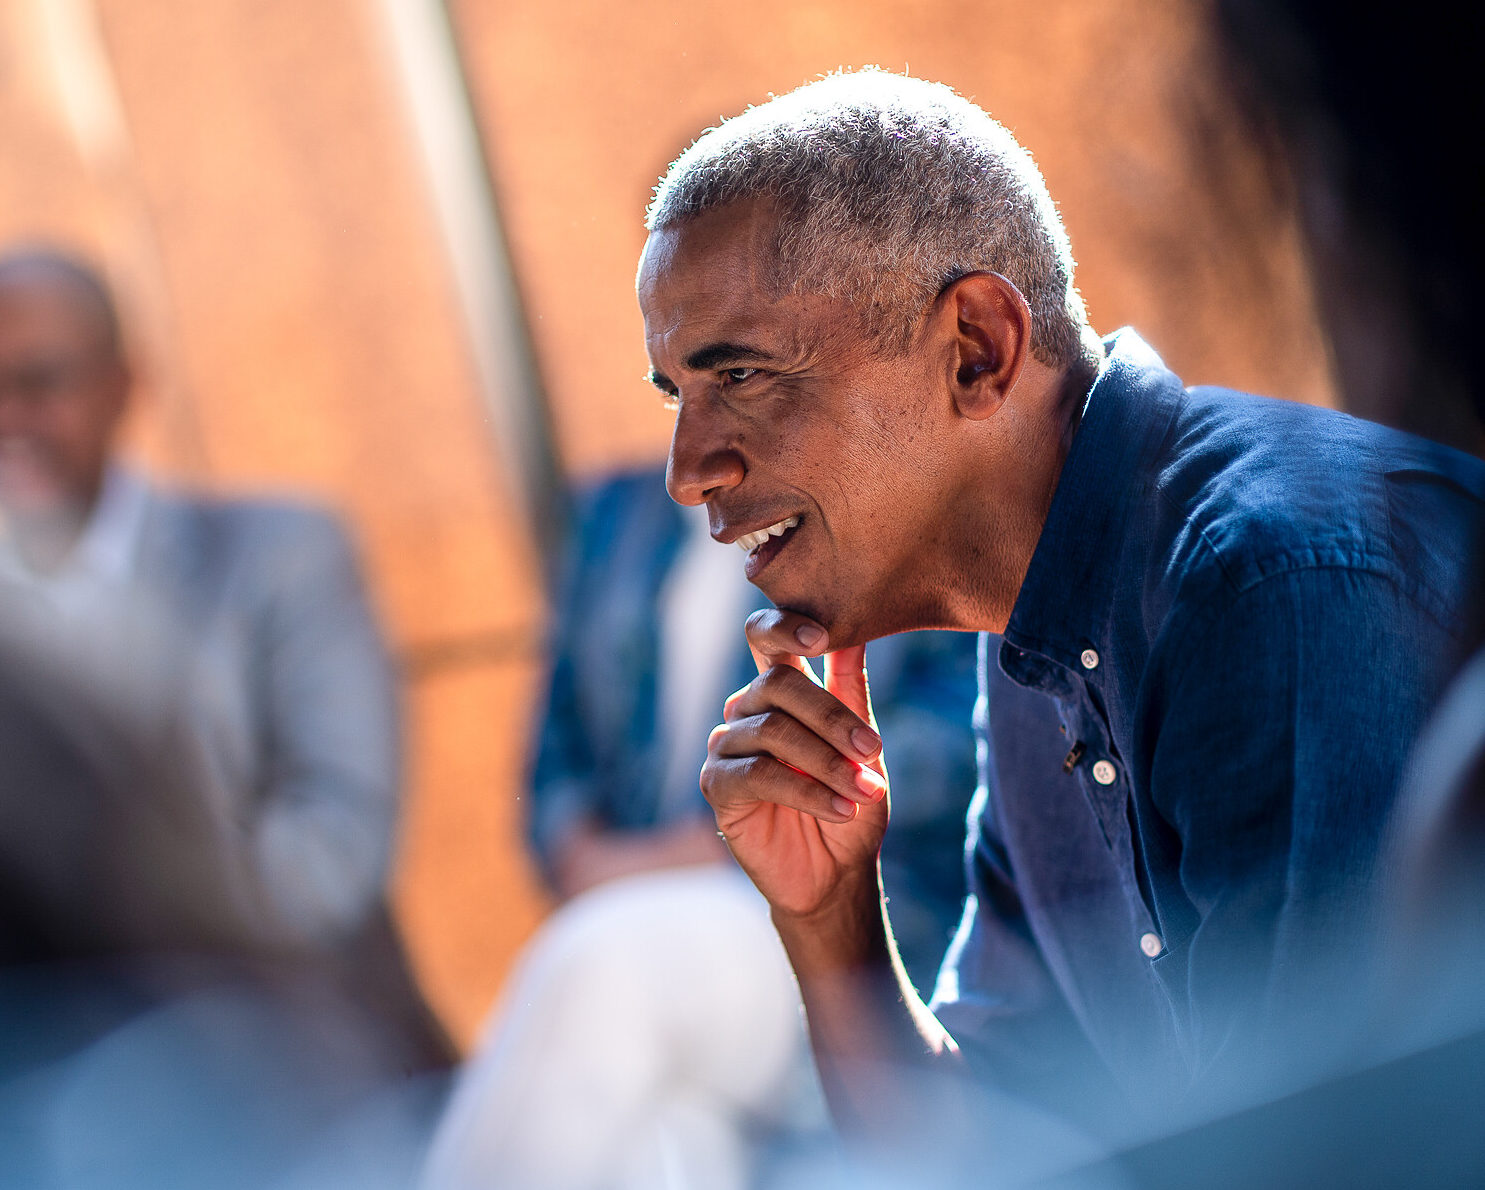 A side profile of President Obama smiling with his hand resting on his chin.